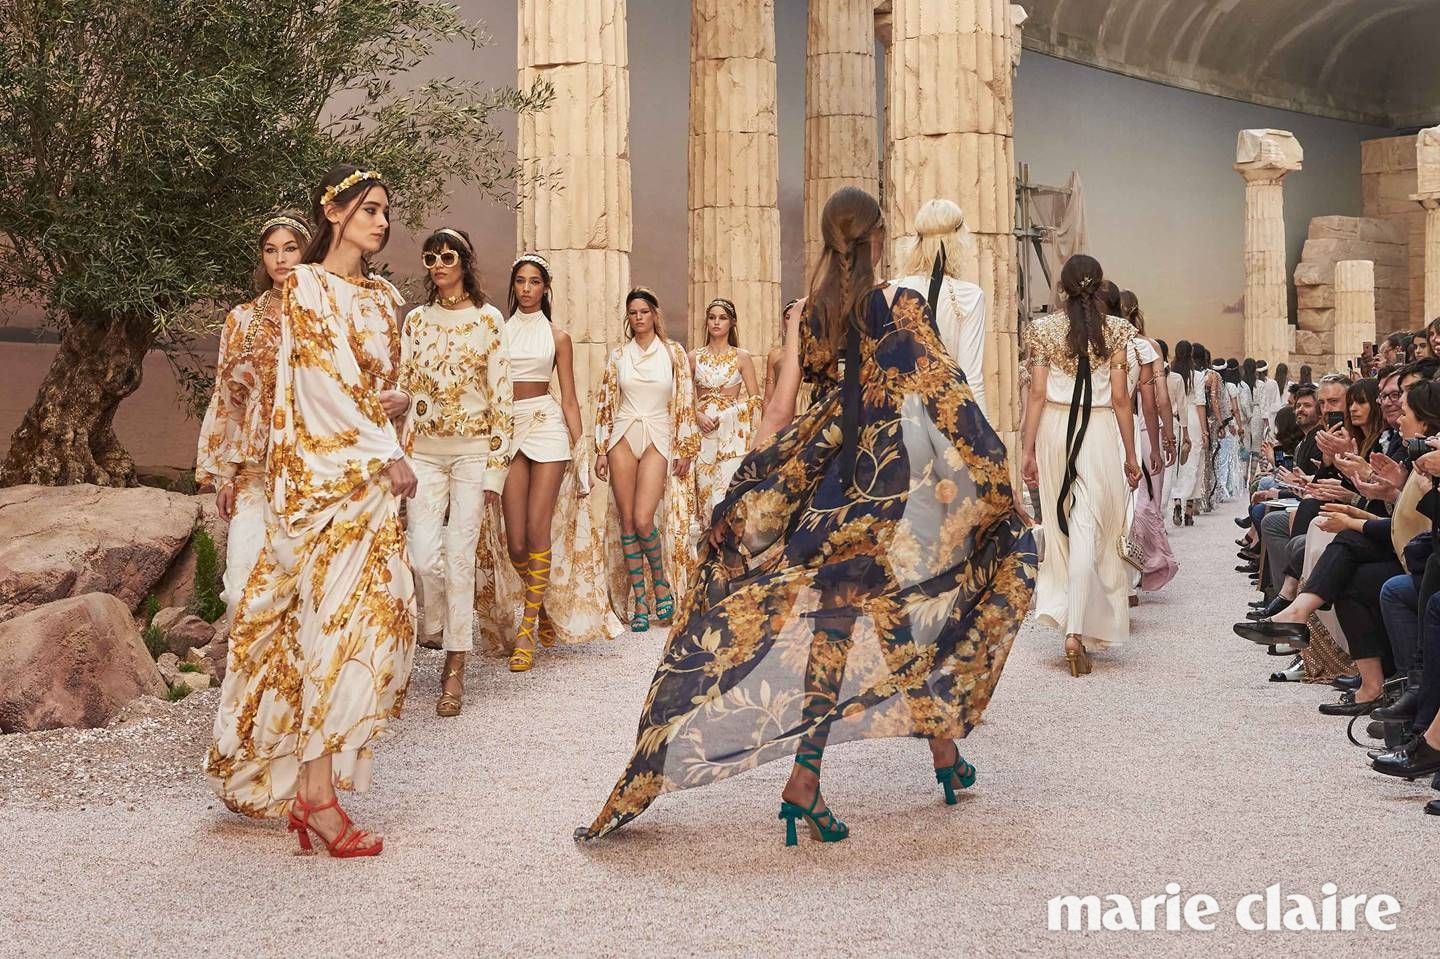 01_2017-18 Cruise collection - Finale pictures